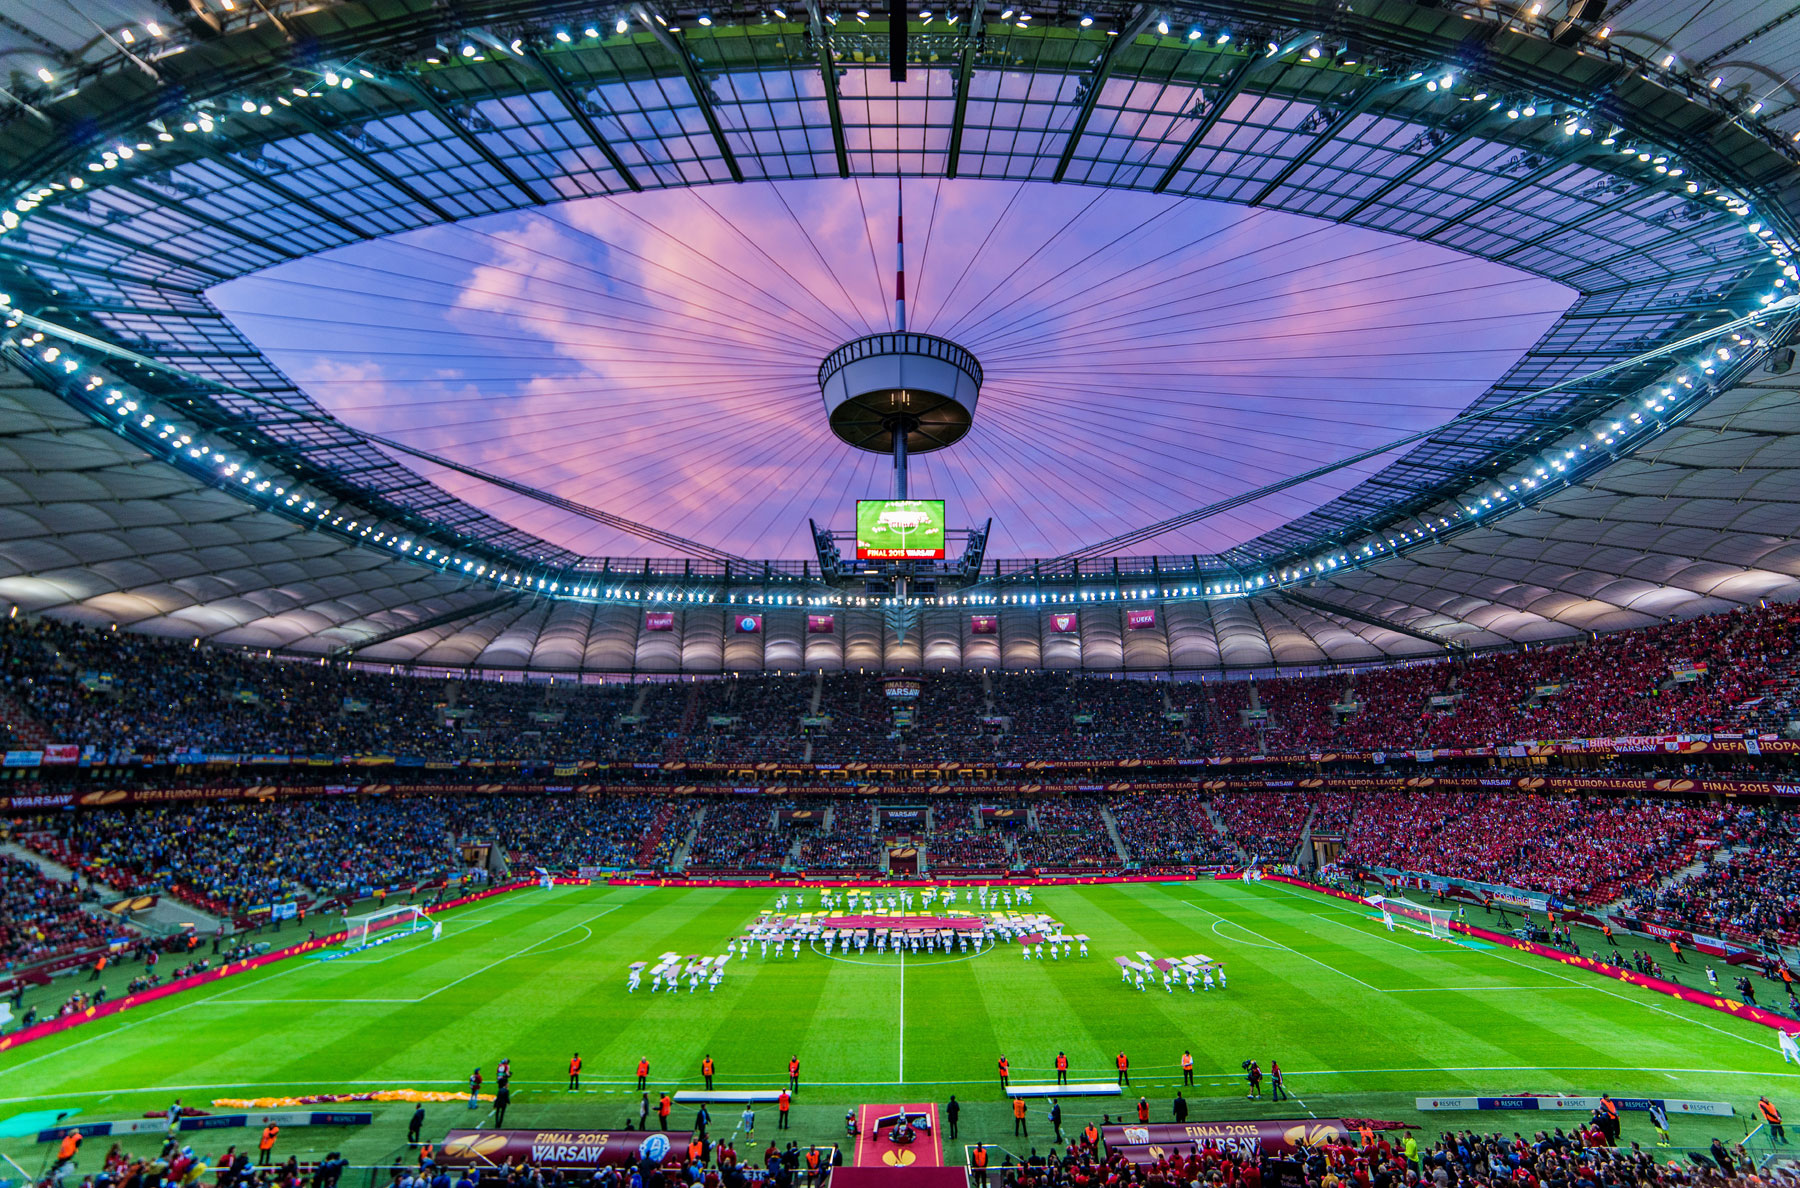 How The Elite Will Attend UEFA EURO 2016 The Football Event Of The Year